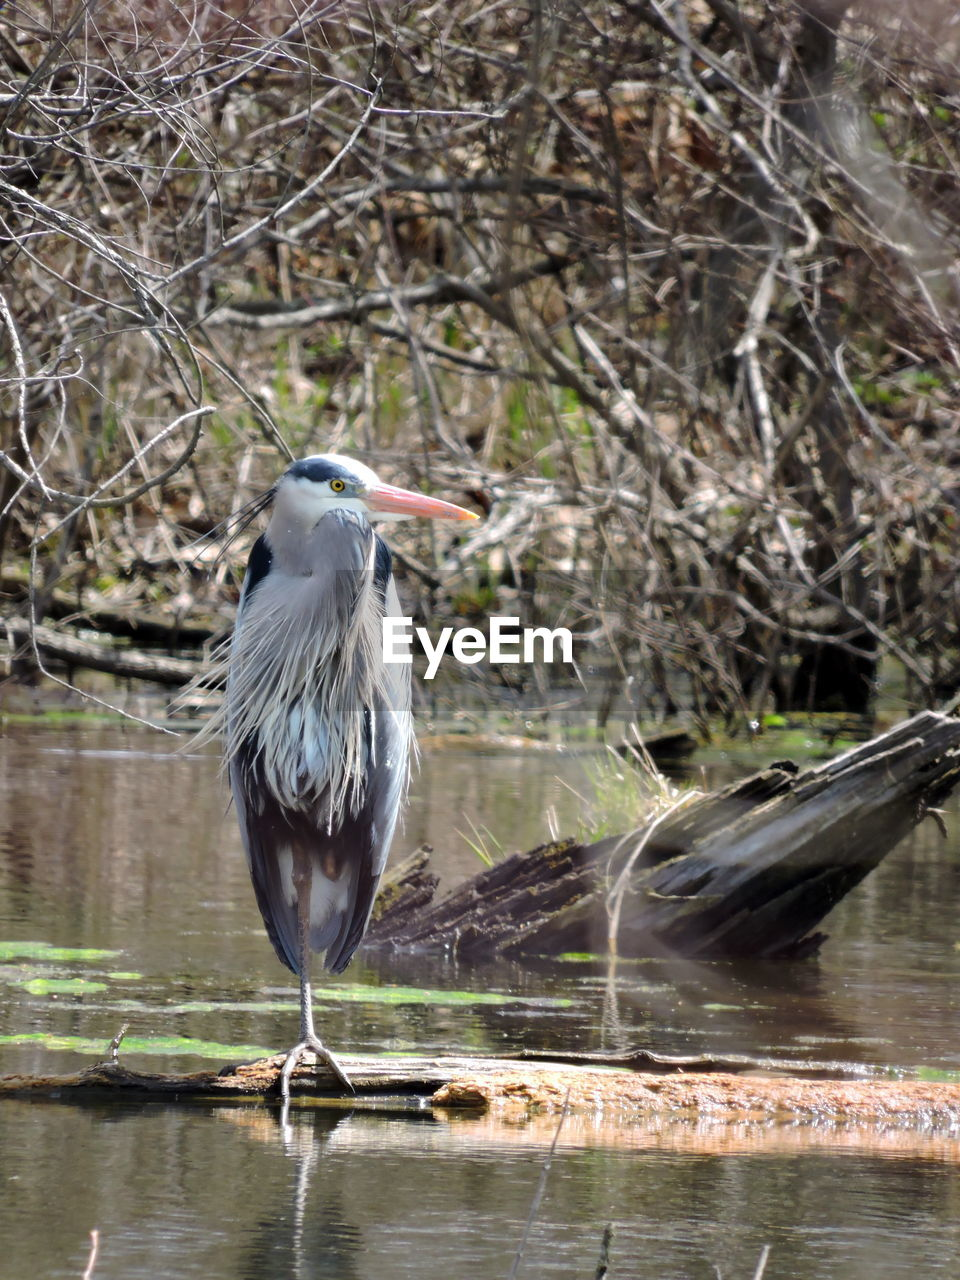 bird, animal themes, vertebrate, one animal, animals in the wild, animal, animal wildlife, perching, water, day, heron, nature, water bird, no people, focus on foreground, lake, tree, outdoors, gray heron, beak